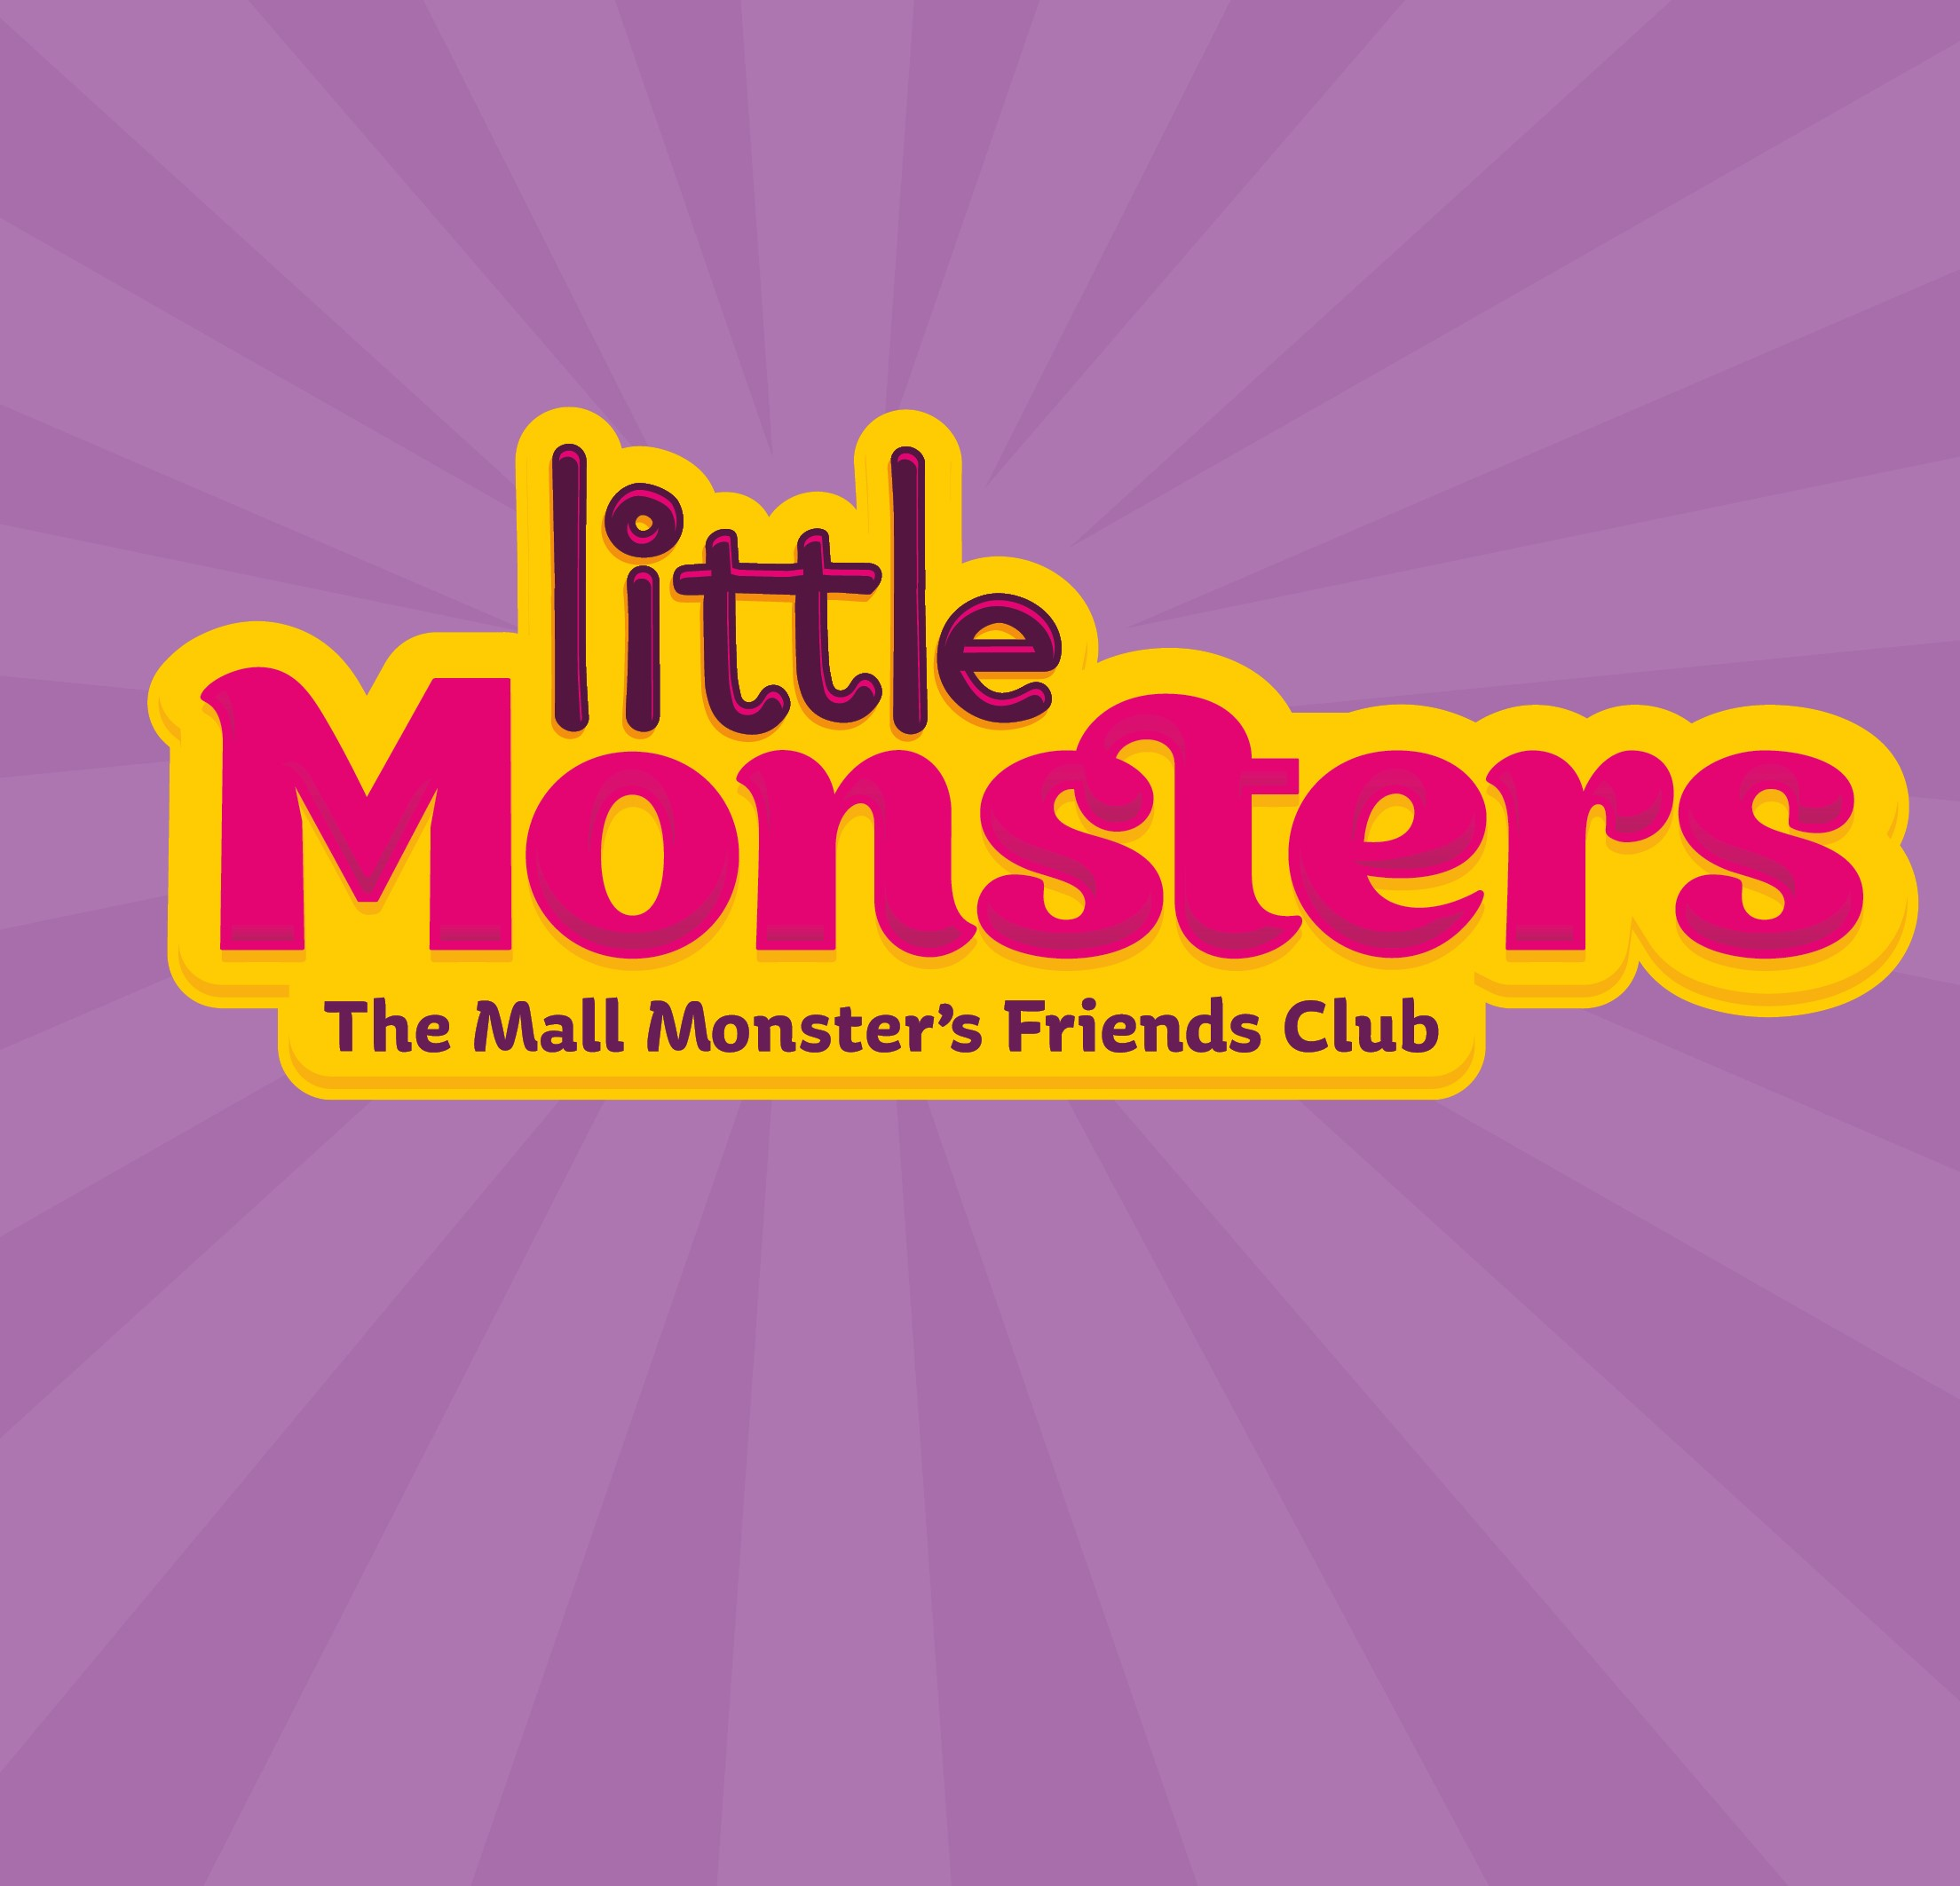 Calling all little monsters to our great launch event